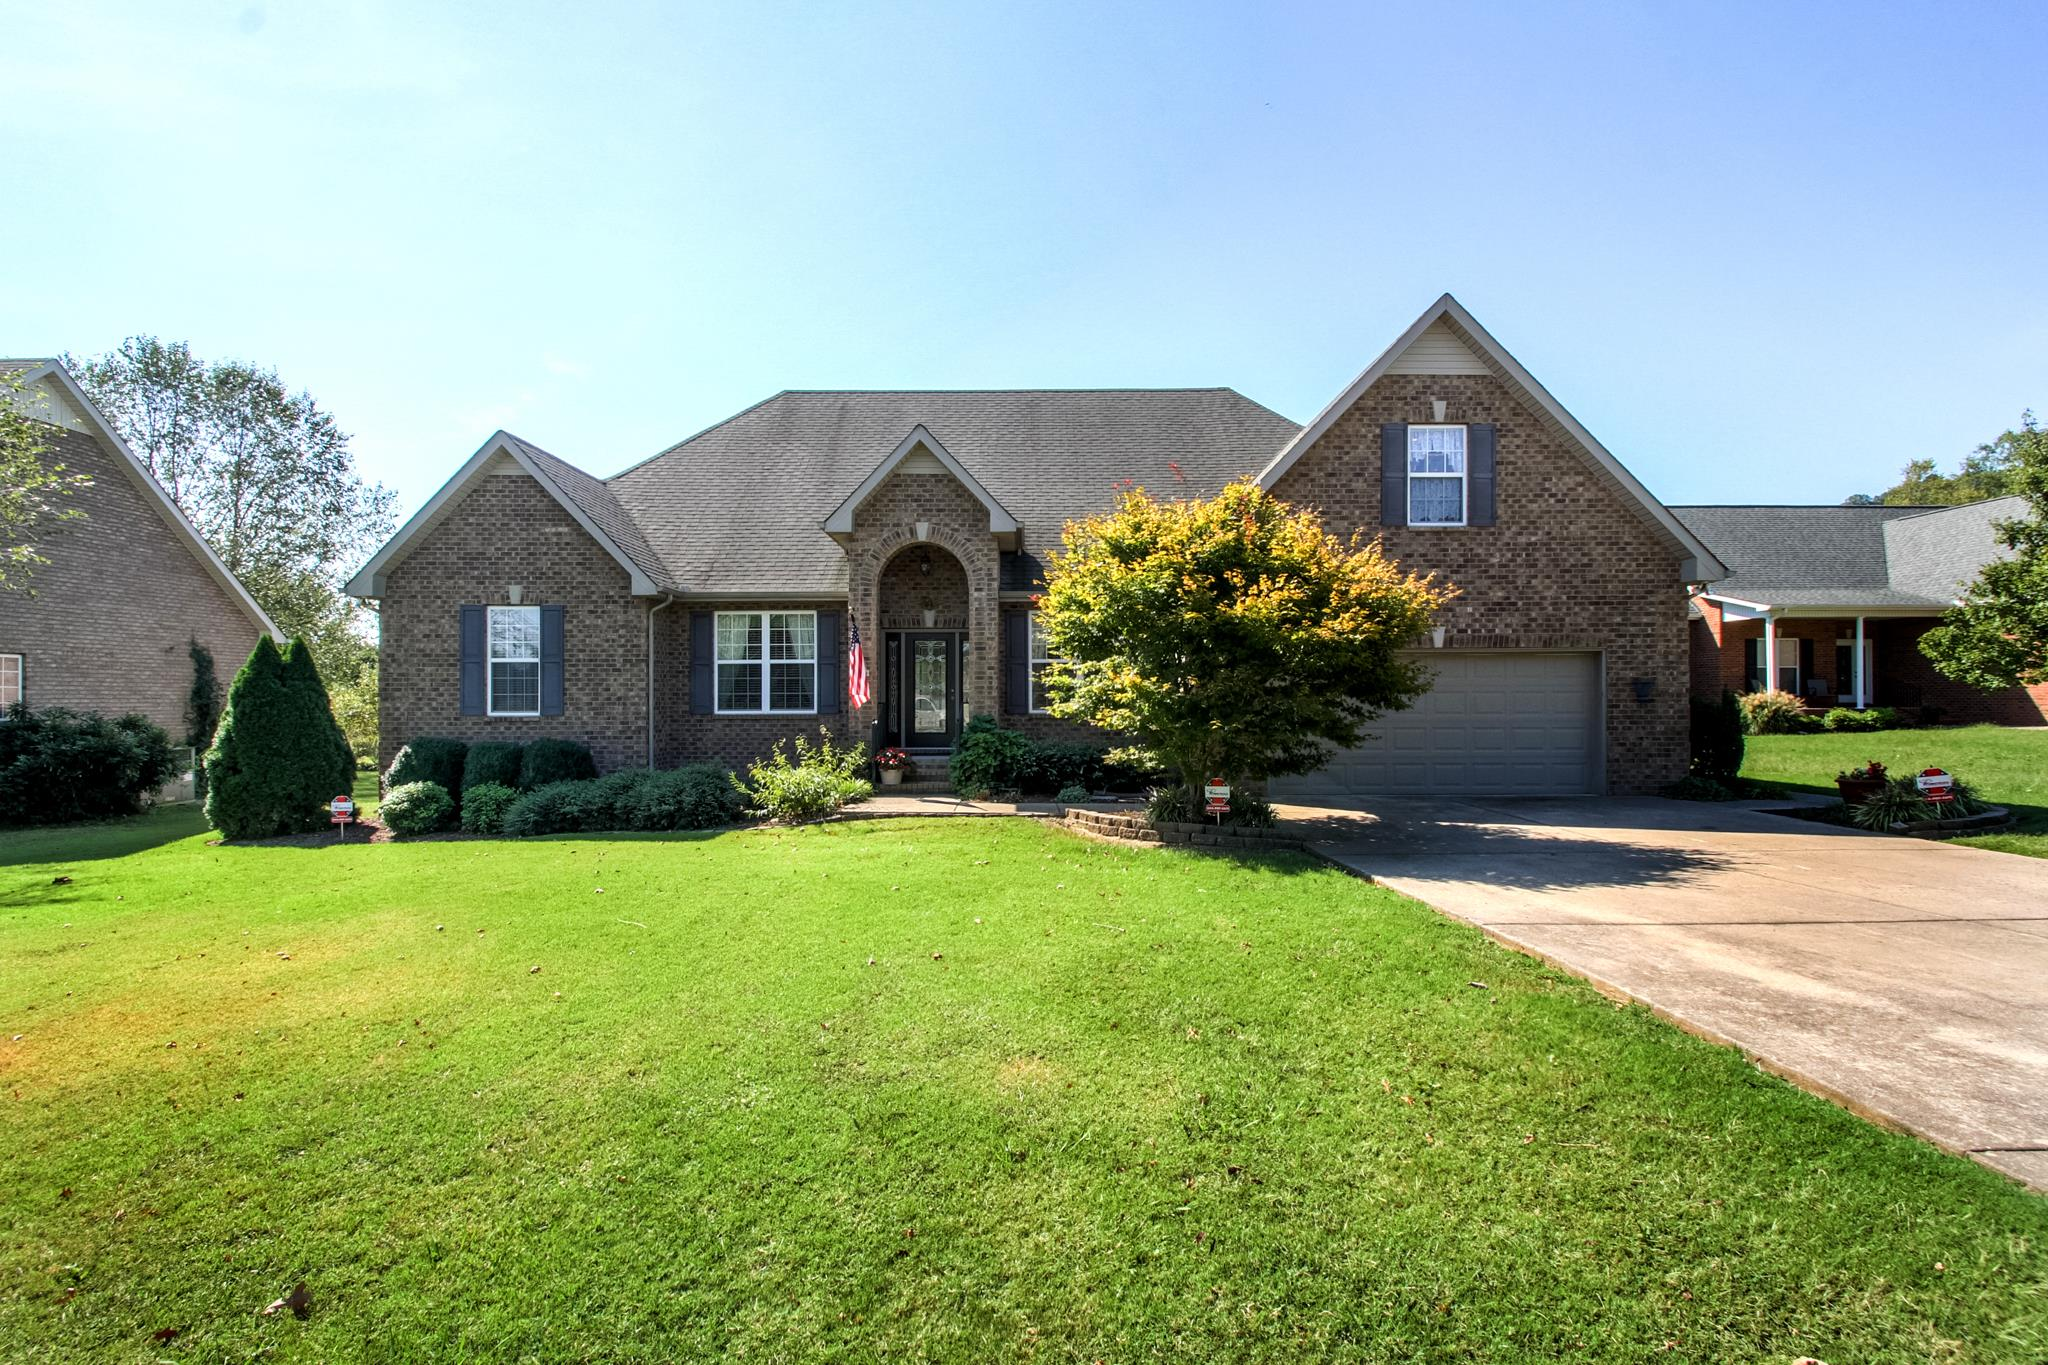 1009 Proud Eagle Dr, Eagleville, TN 37060